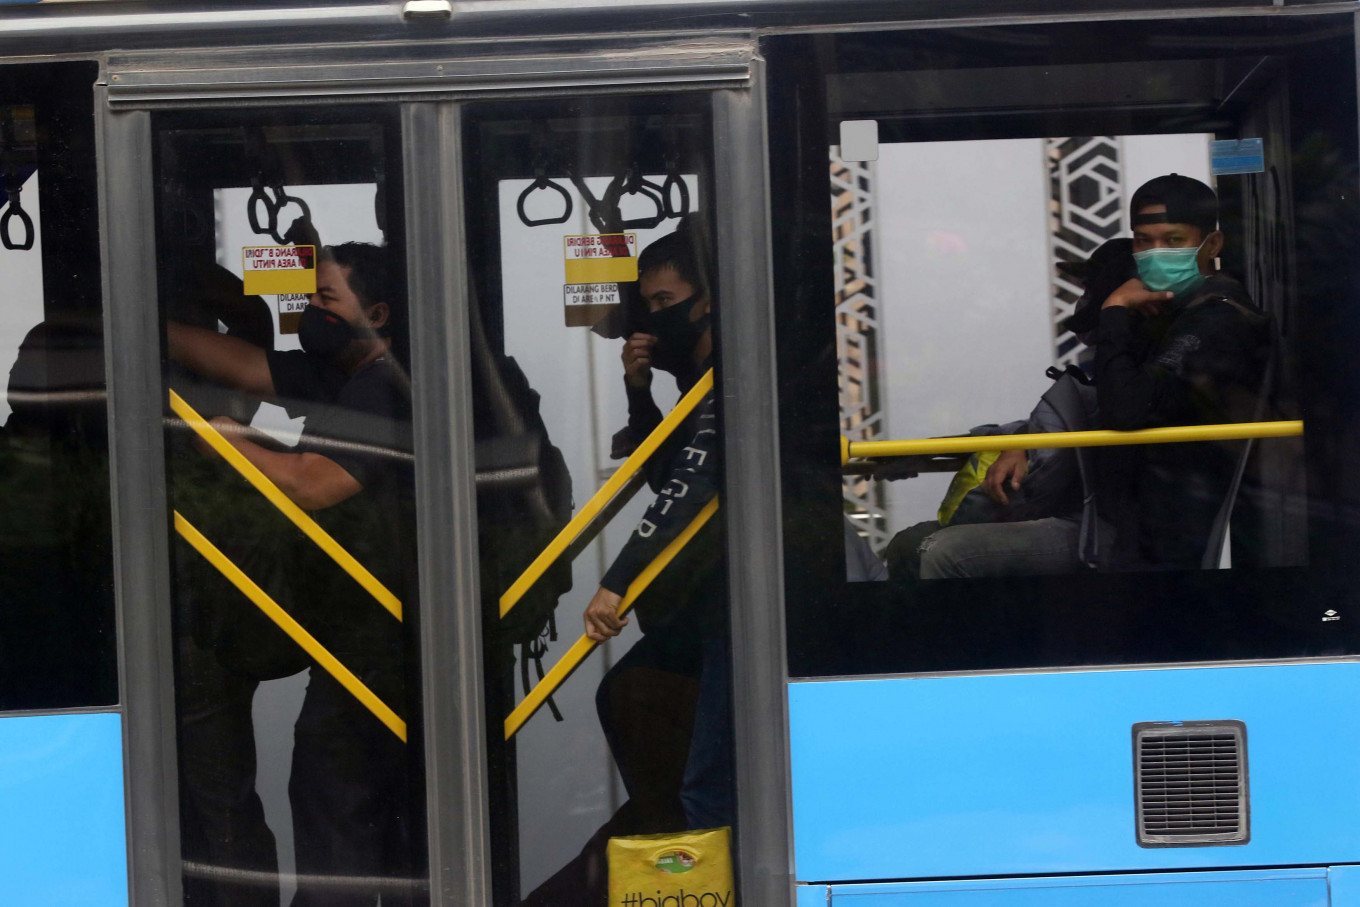 Transjakarta to play 'Indonesia Raya' on buses and bus stops to celebrate Independence Day